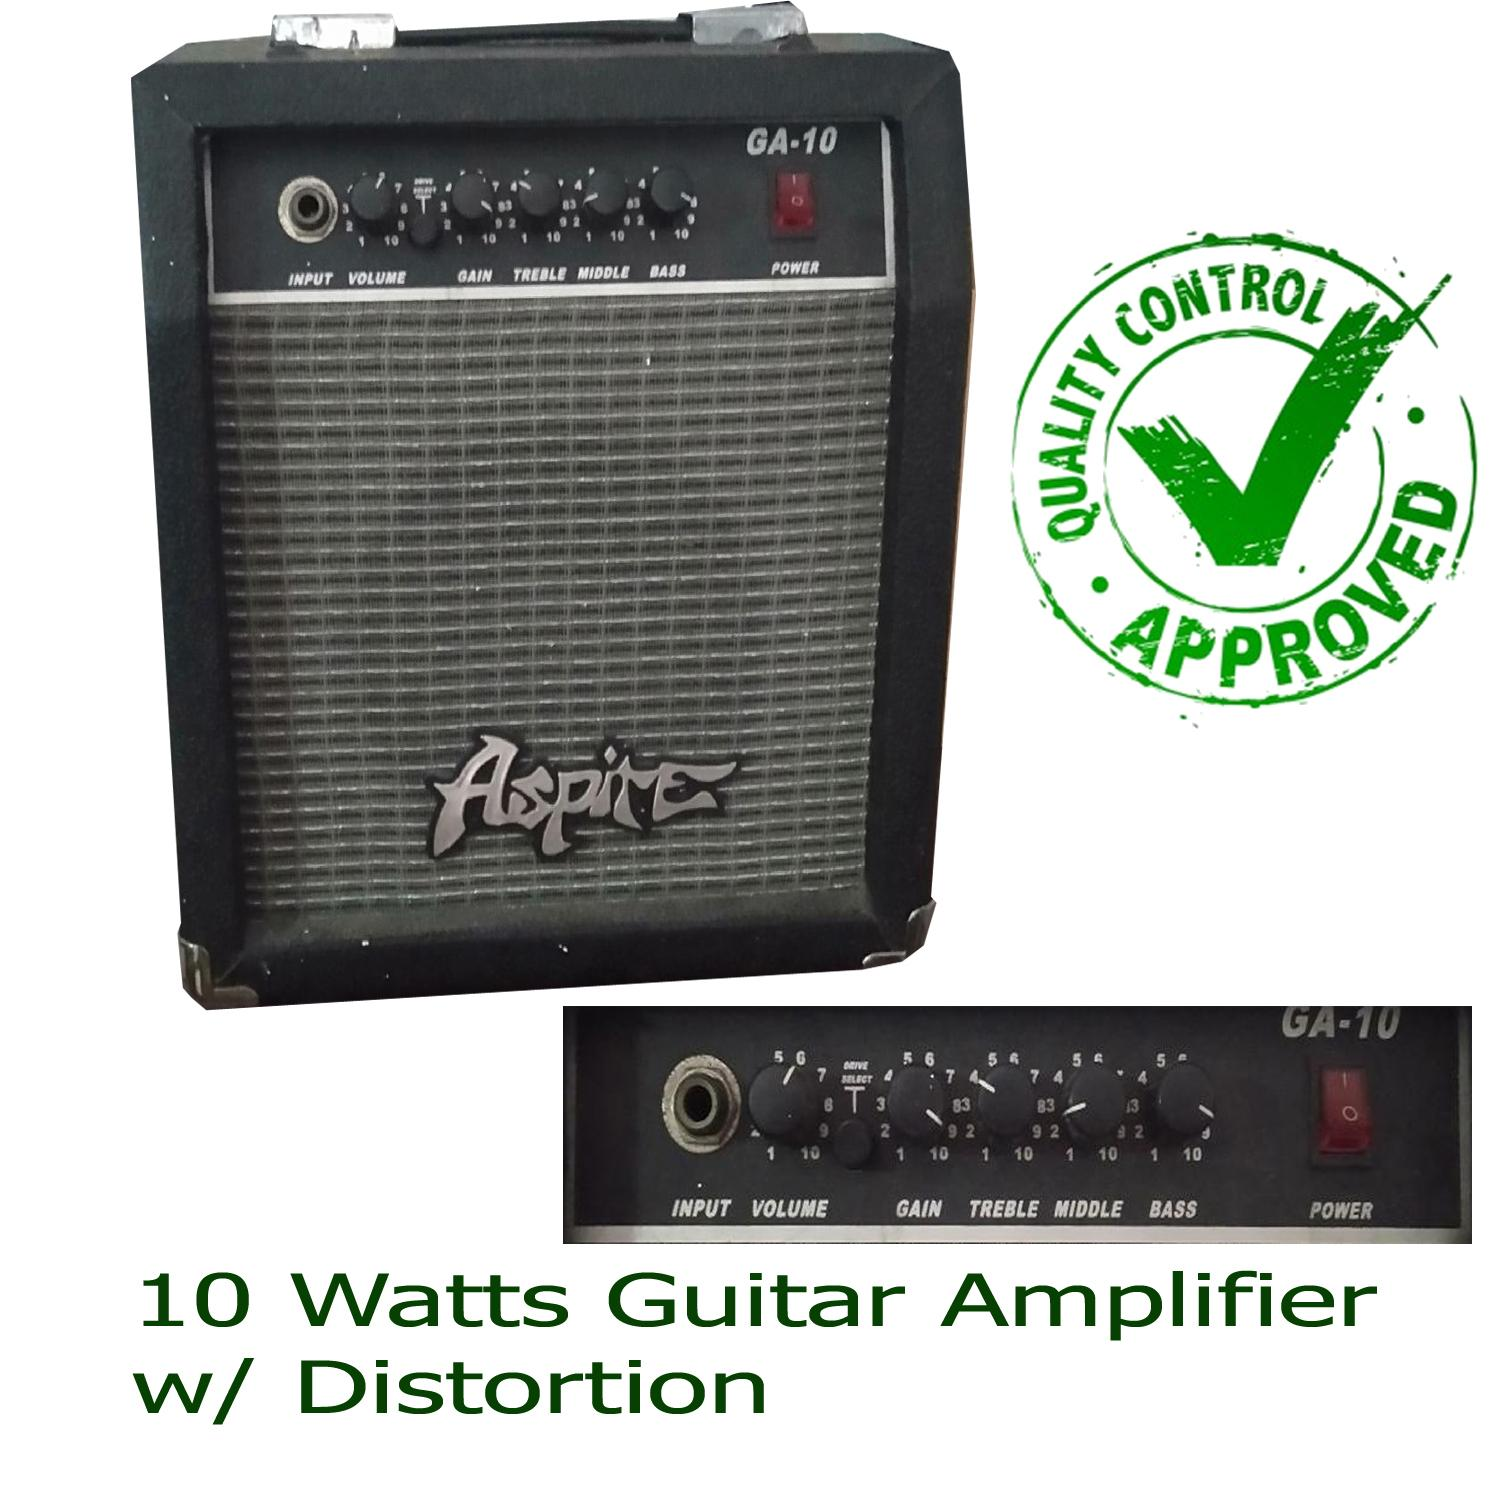 hight resolution of guitar amplifier aspire 10watts ga 10 with overdrive alternative brand to global